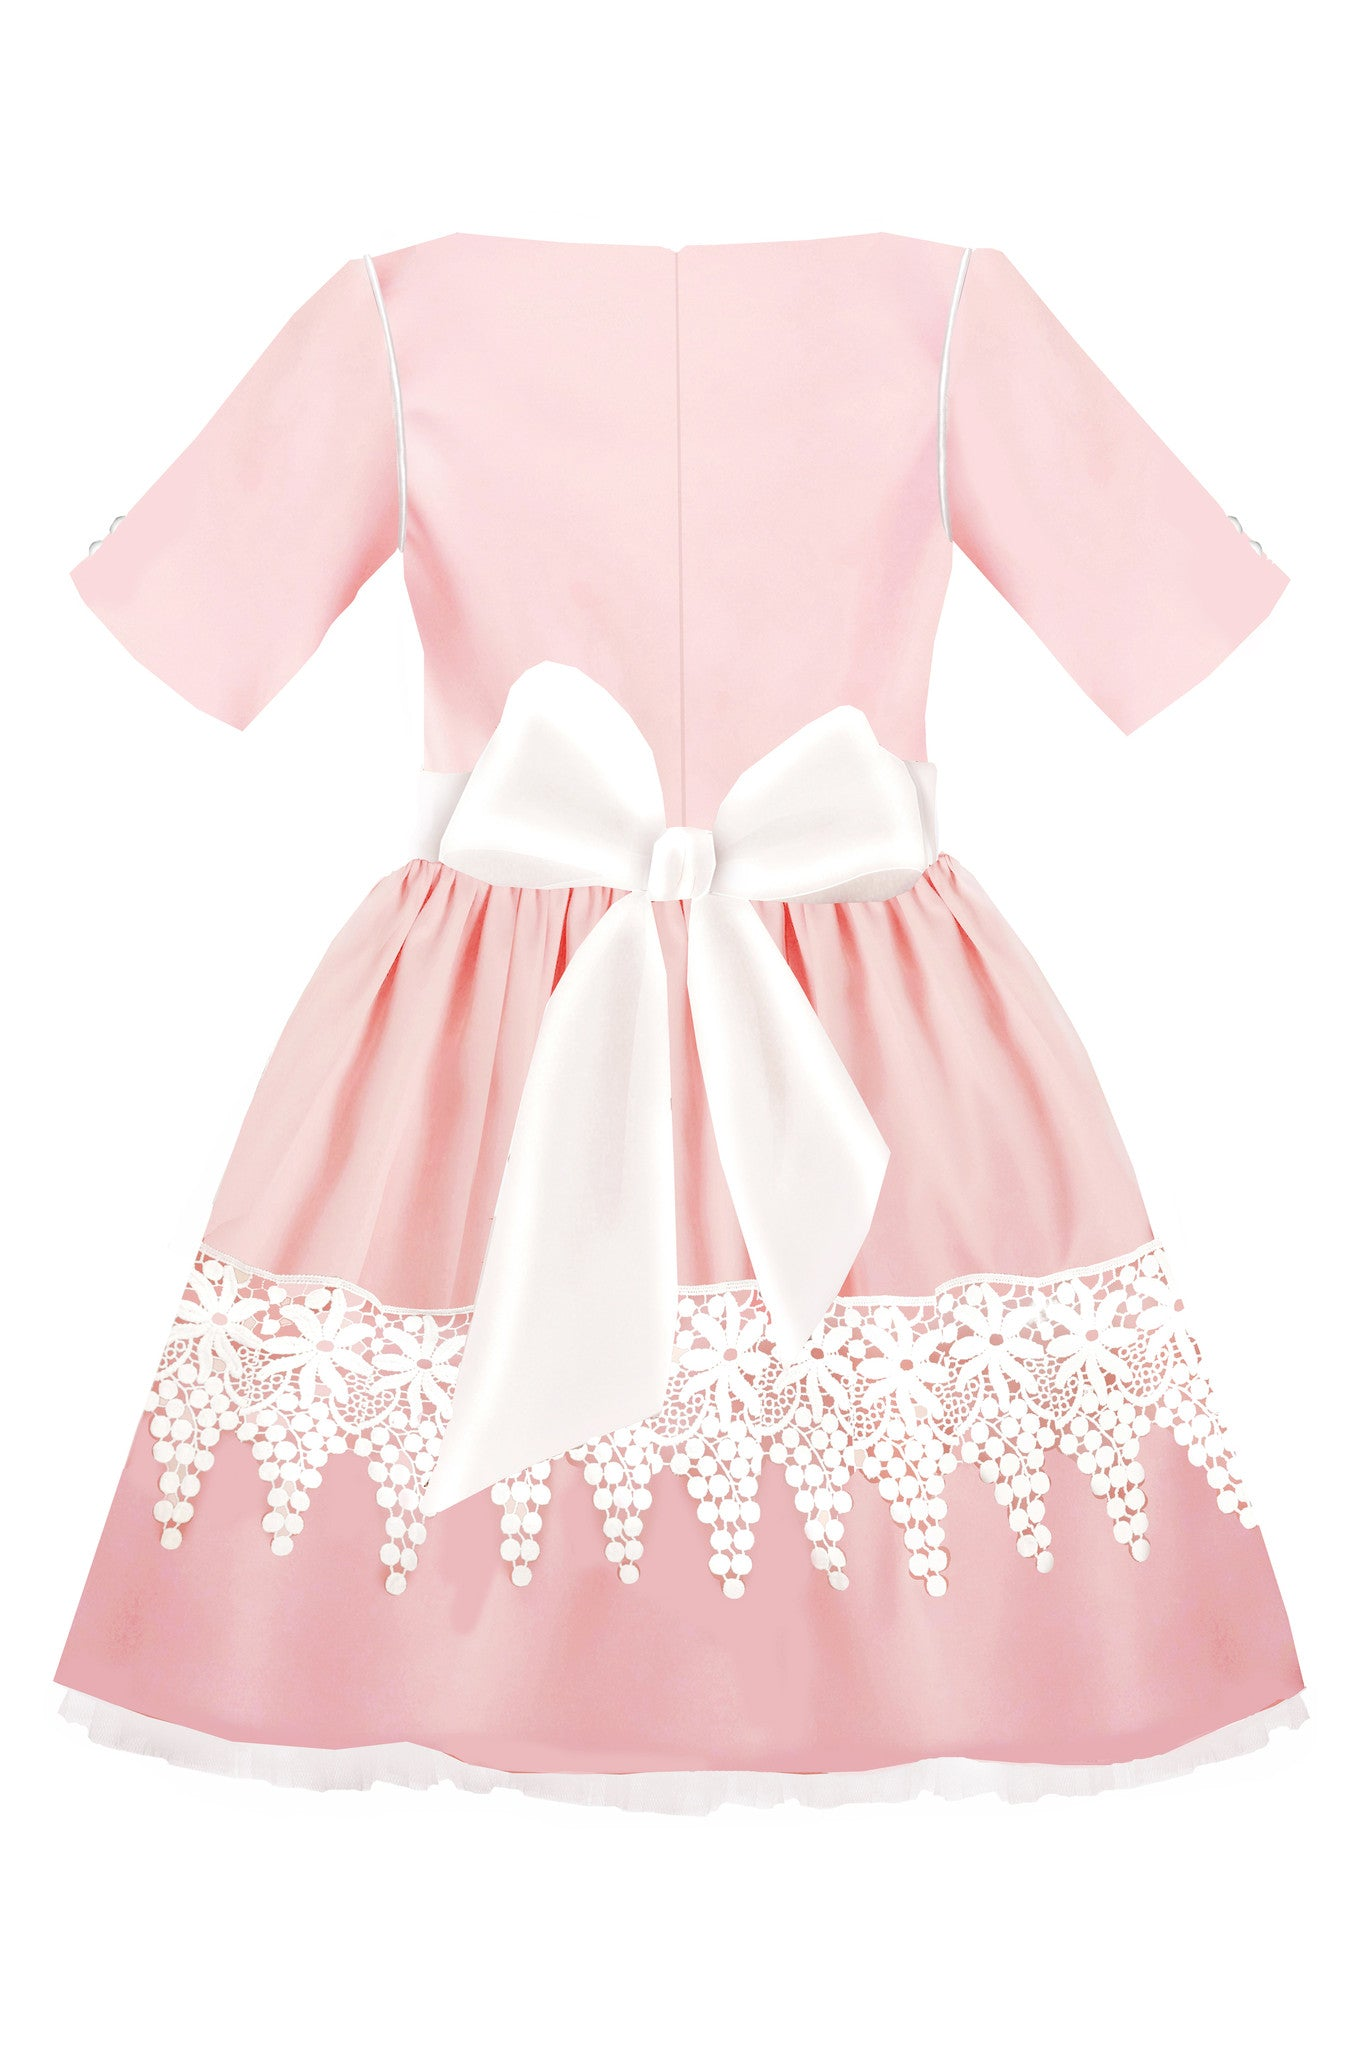 72e1d444efeb5c Pink Taffeta Full Girls Dress with White French Lace - LAZY FRANCIS - Shop  in store